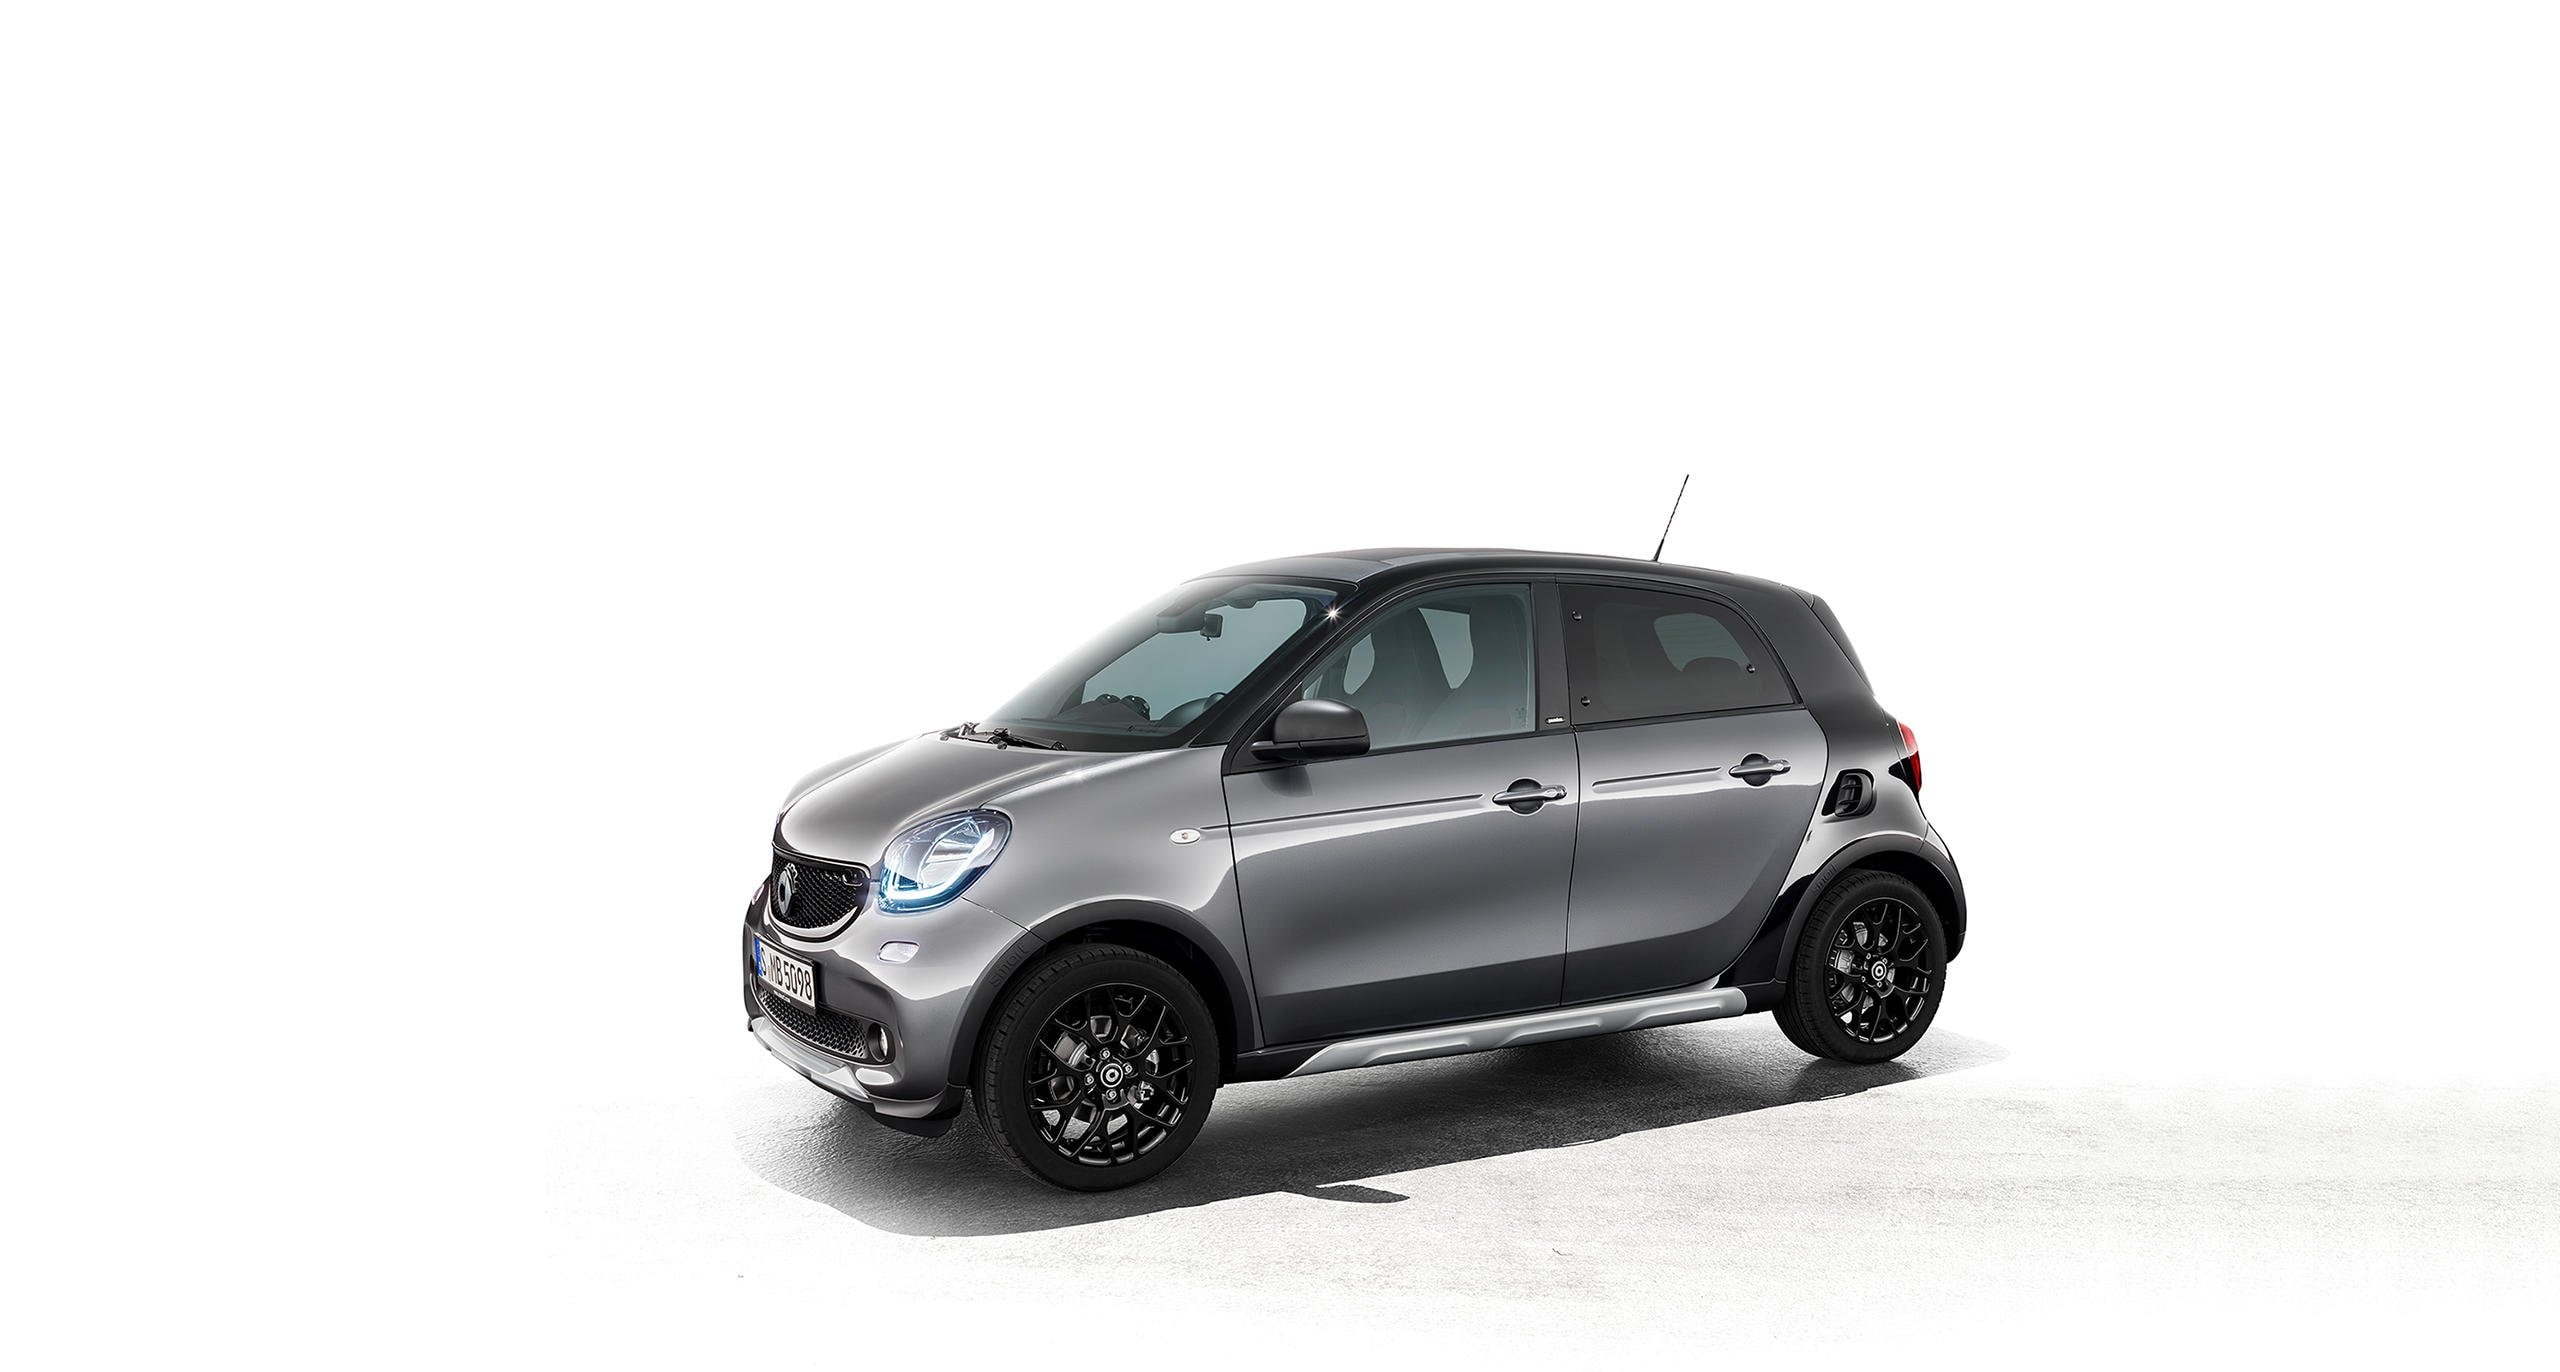 smart forfour crosstown edition (W 453): Special detachable parts in underride guard-look and striking side skirts conjure up a sporty crossover appearance.